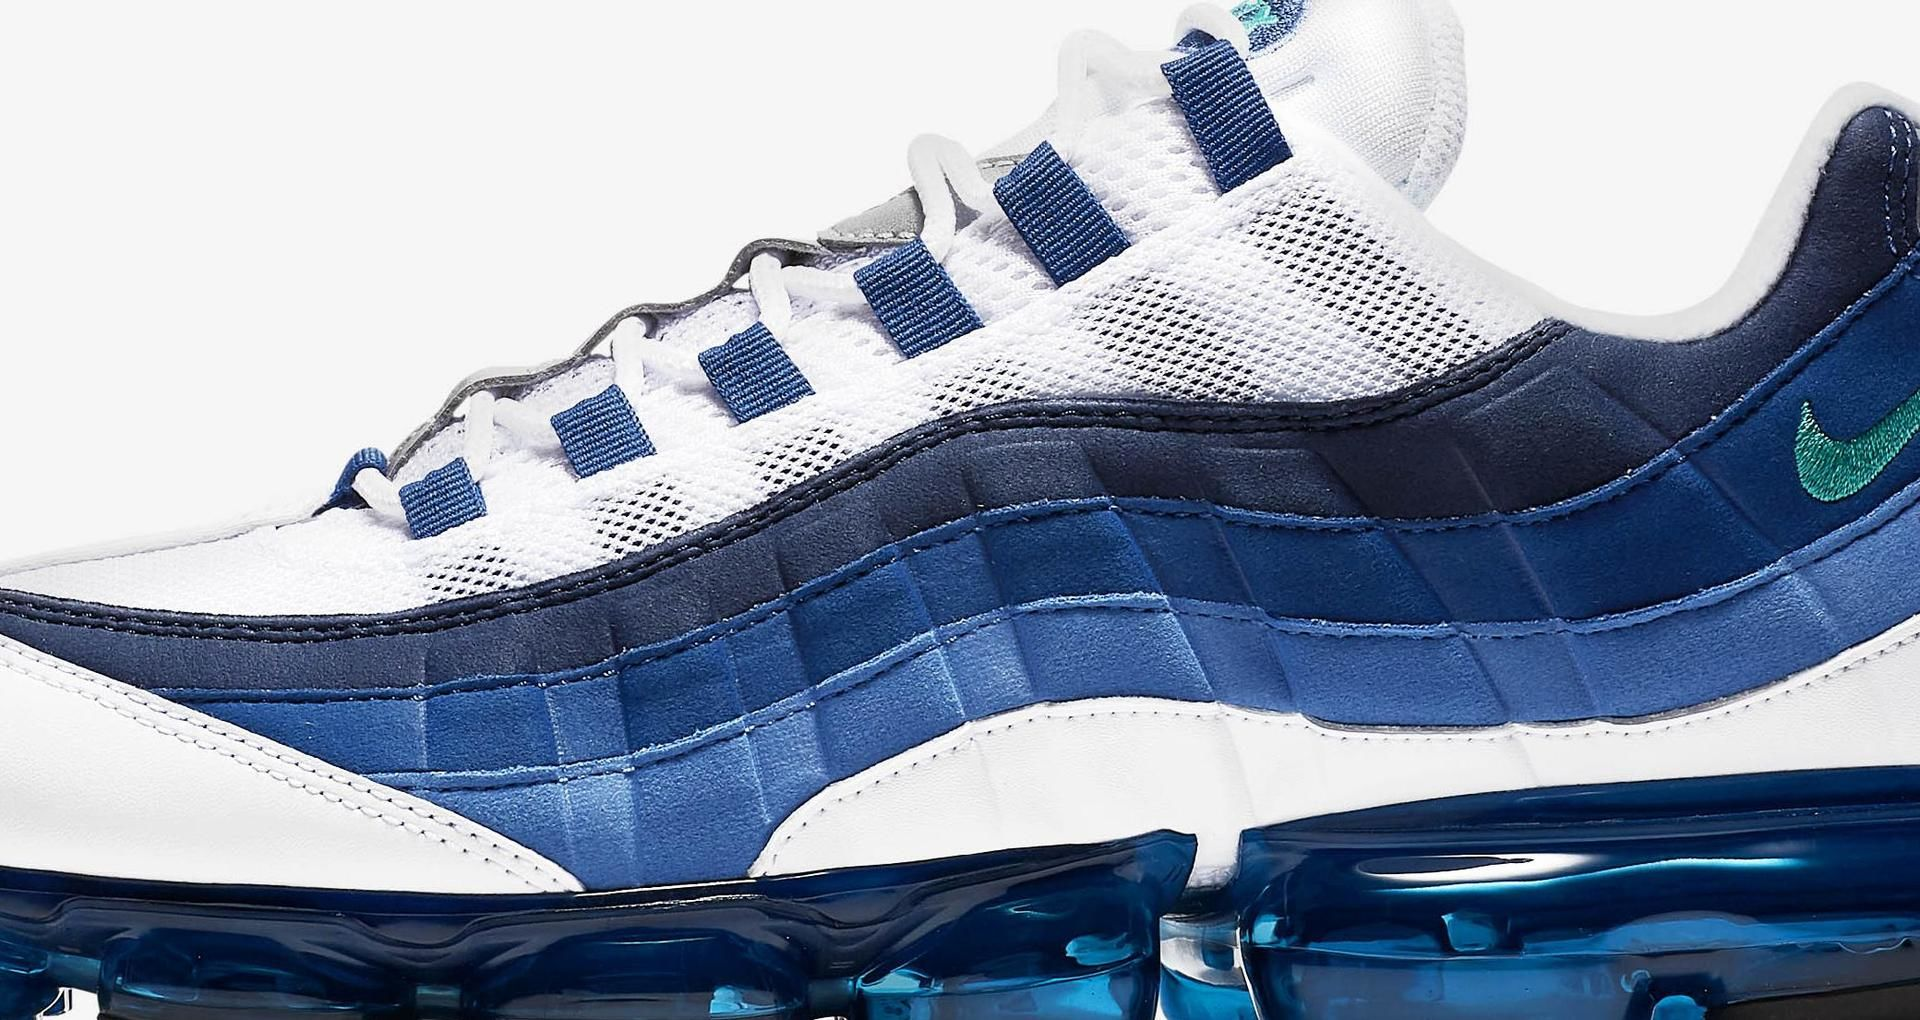 huge selection of 0ed70 3e769 Nike Air Vapormax 95 'White & French Blue' Release Date ...